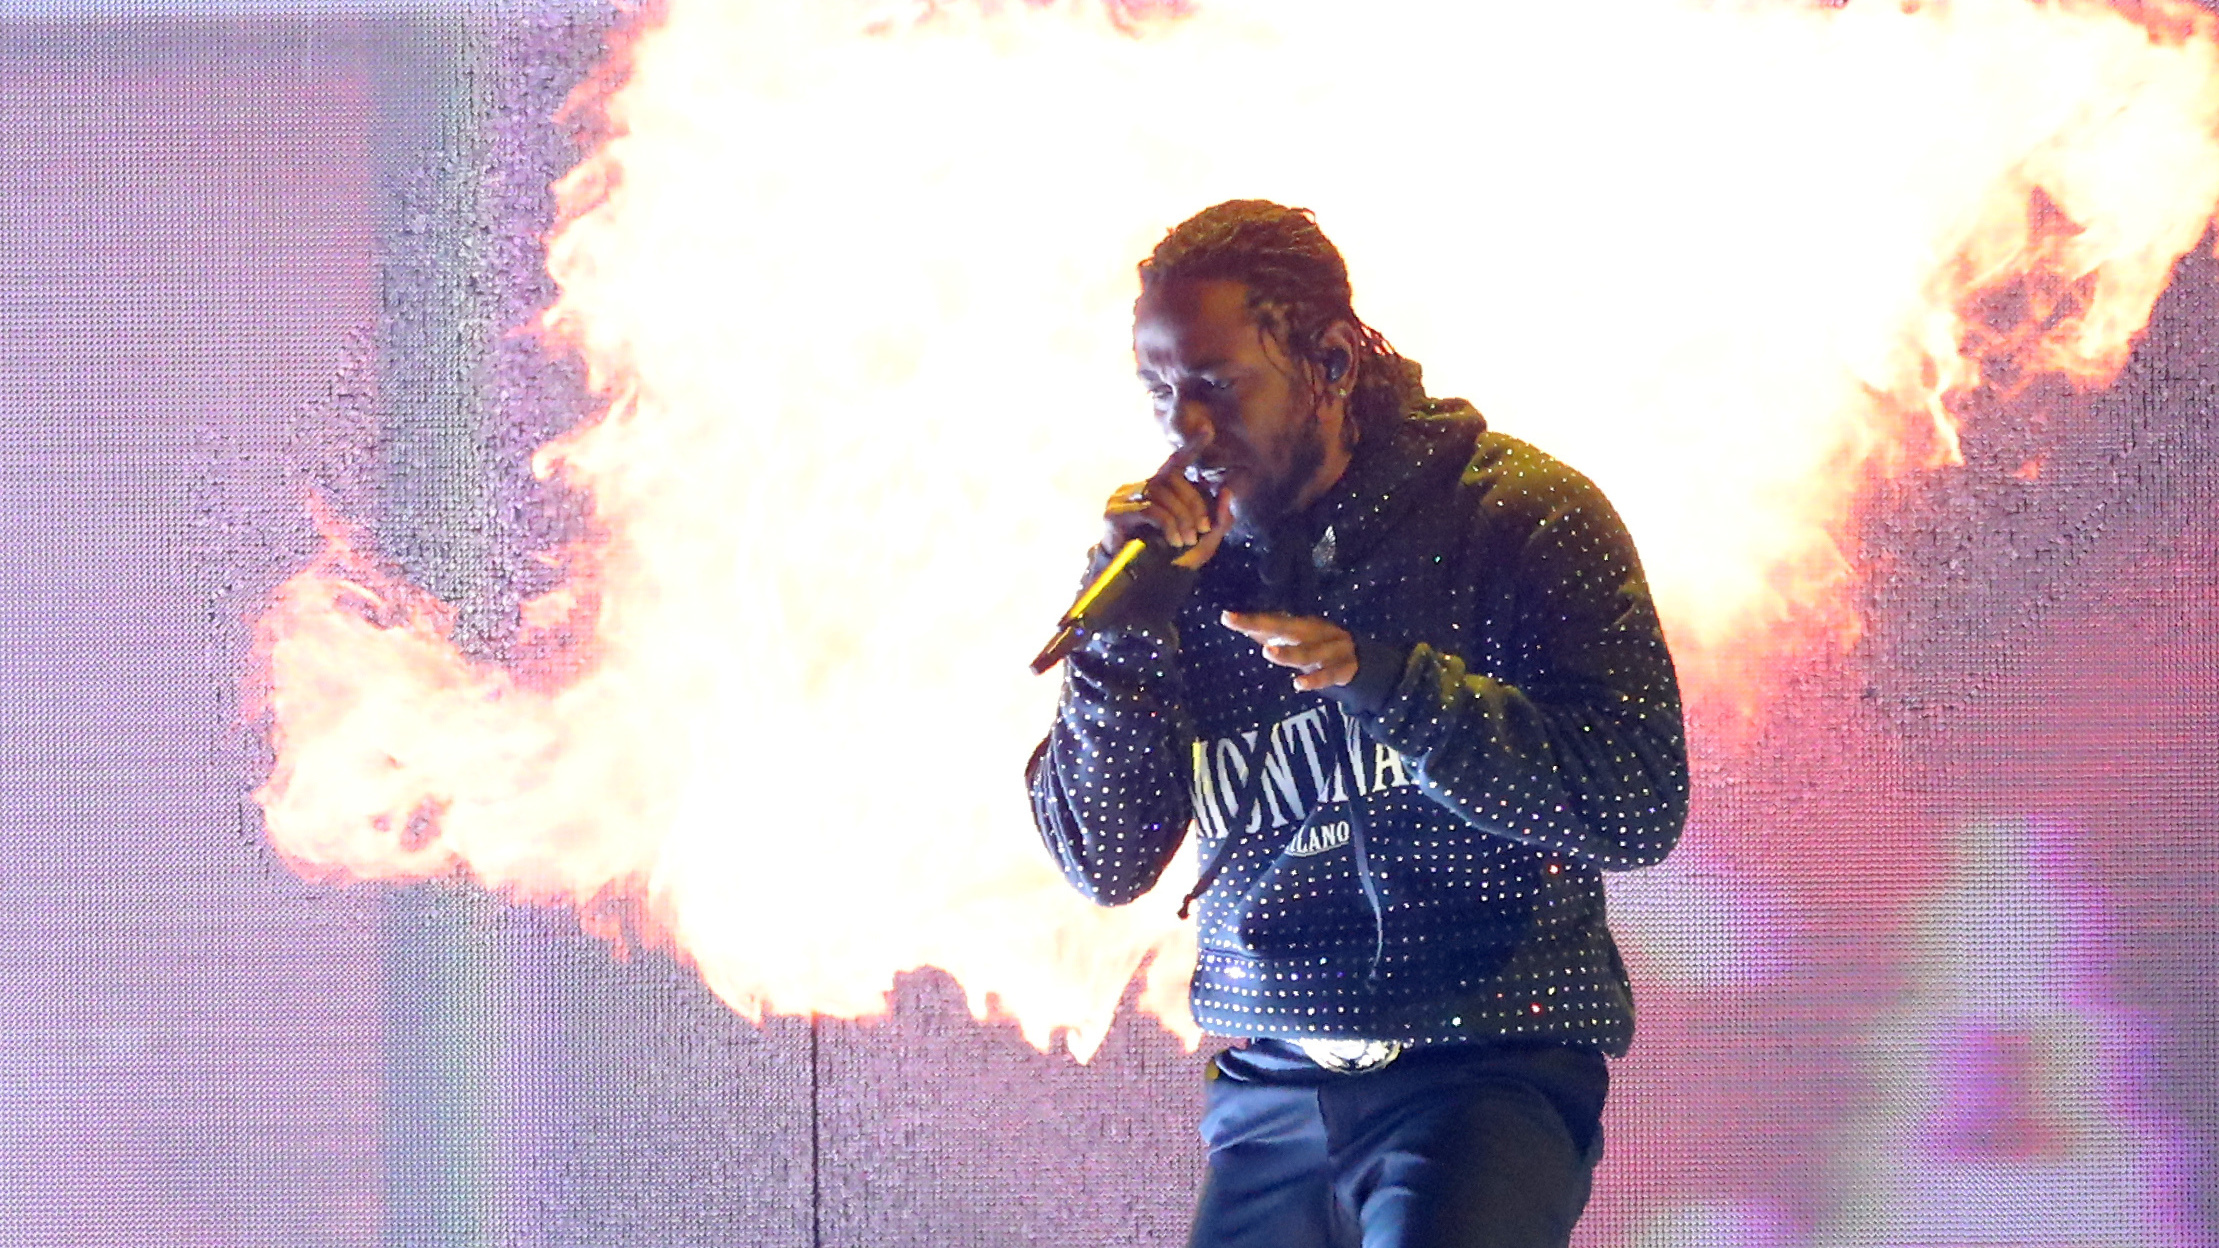 Kendrick Lamar whose album DAMN. won this year's Pulitzer Prize for music performs in London earlier this year